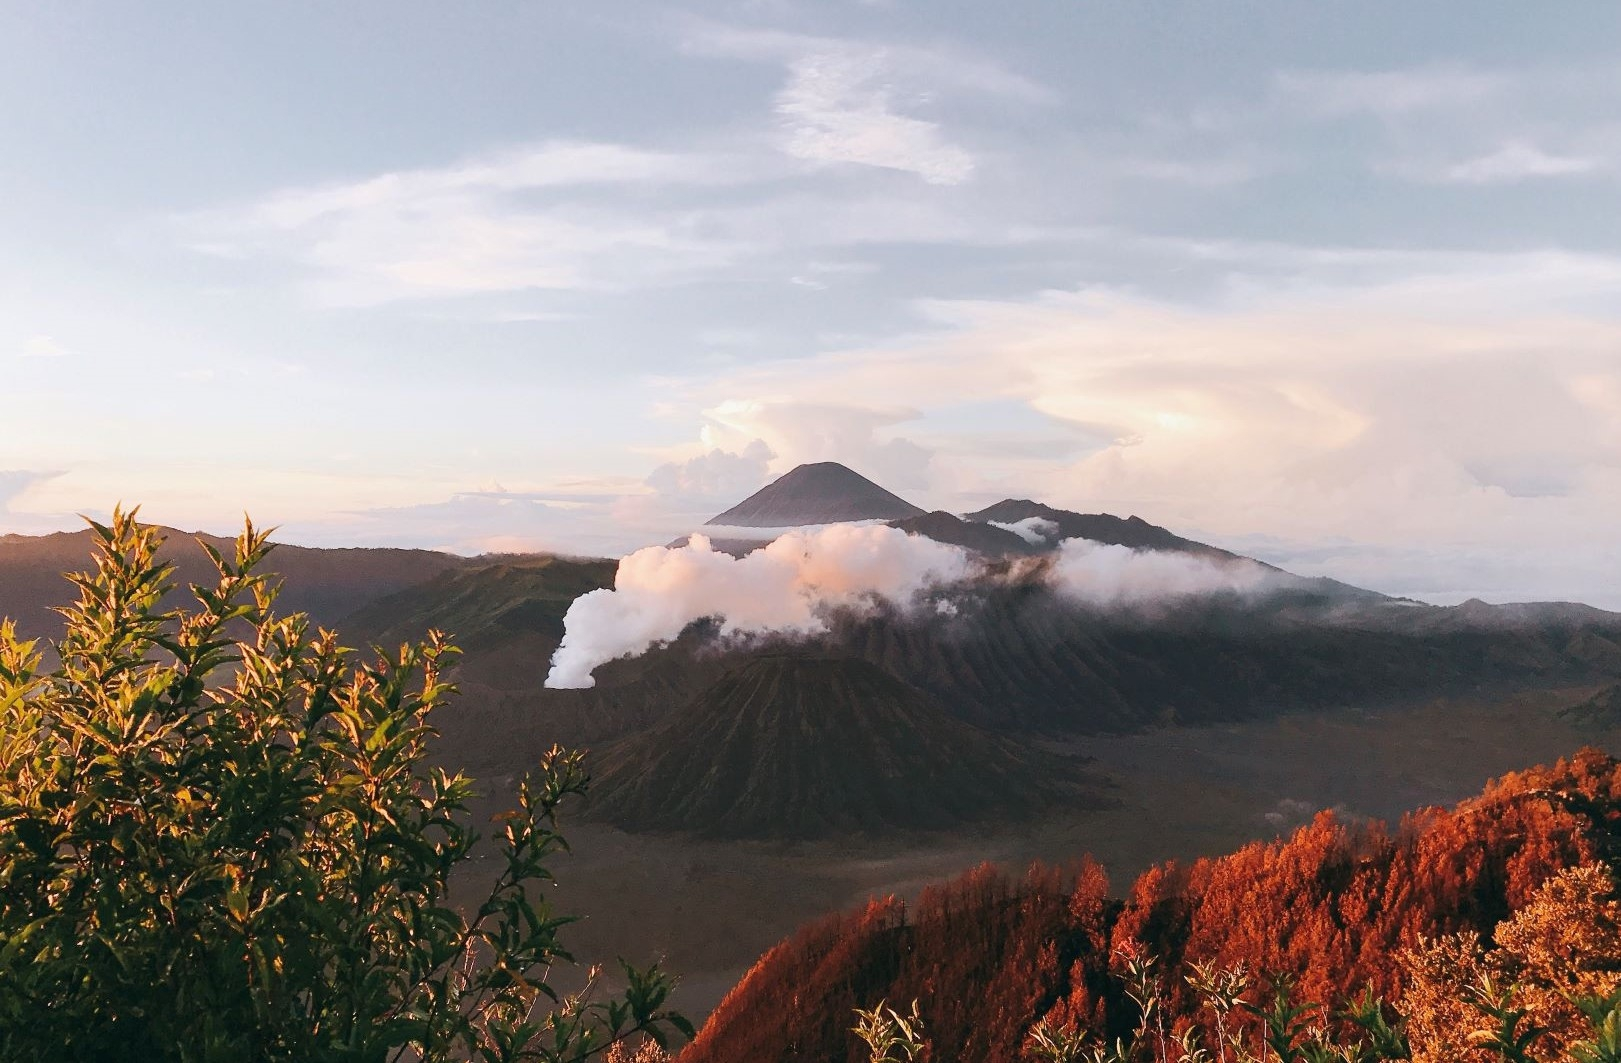 Den Indonesia, cham chan toi mieng nui lua Bromo hinh anh 1